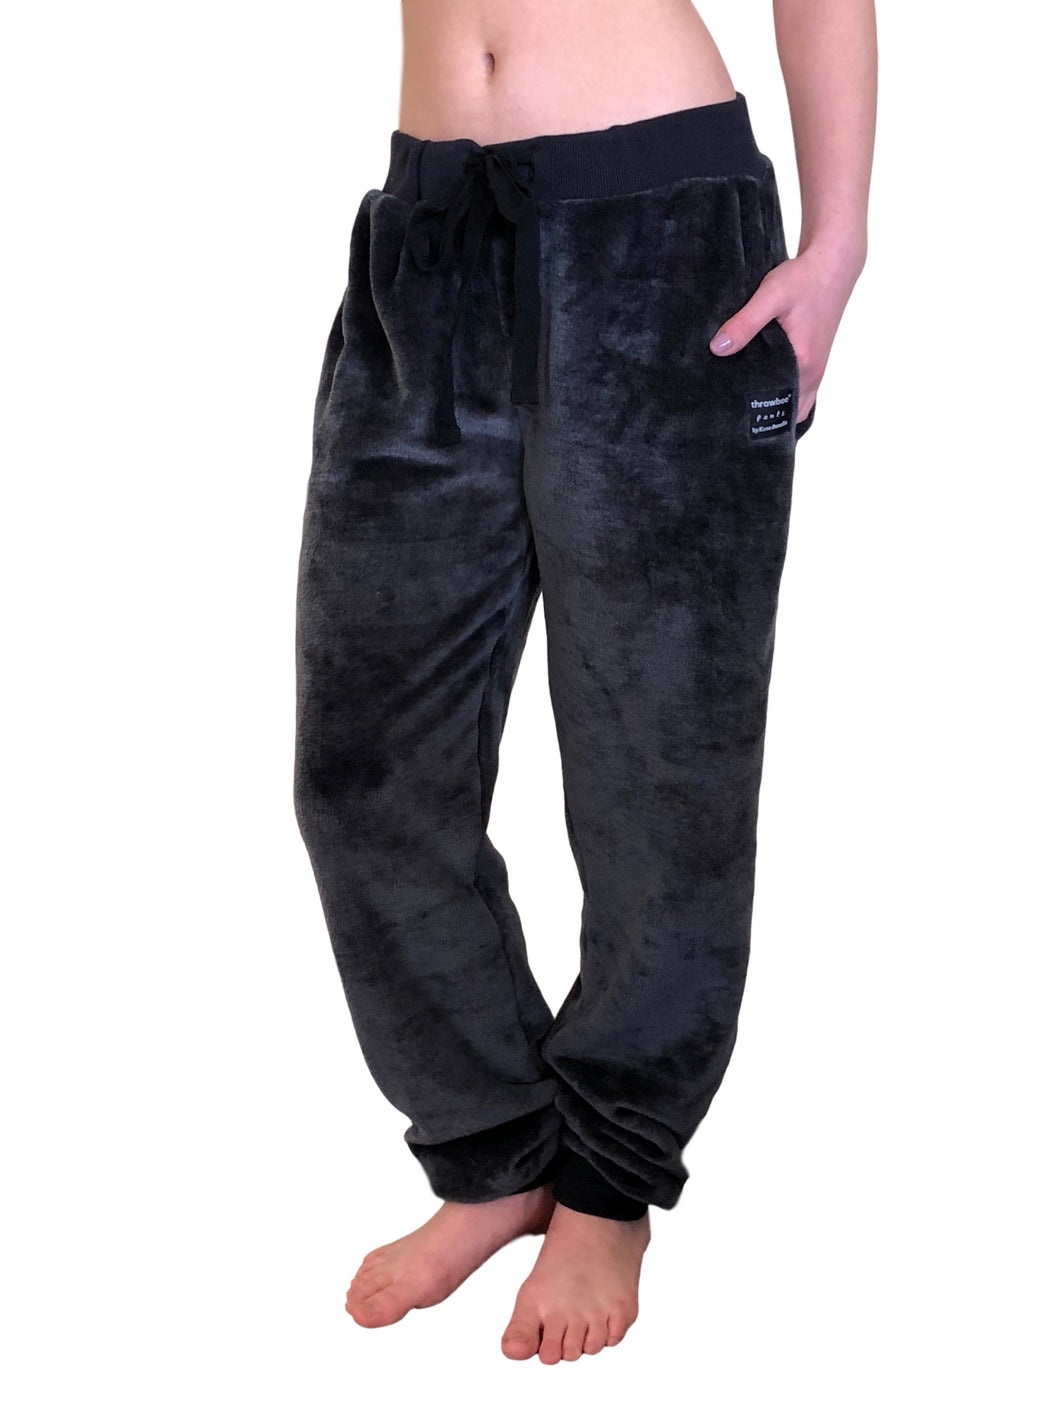 throwbee Blanket-PANTS - Gray (unisex)